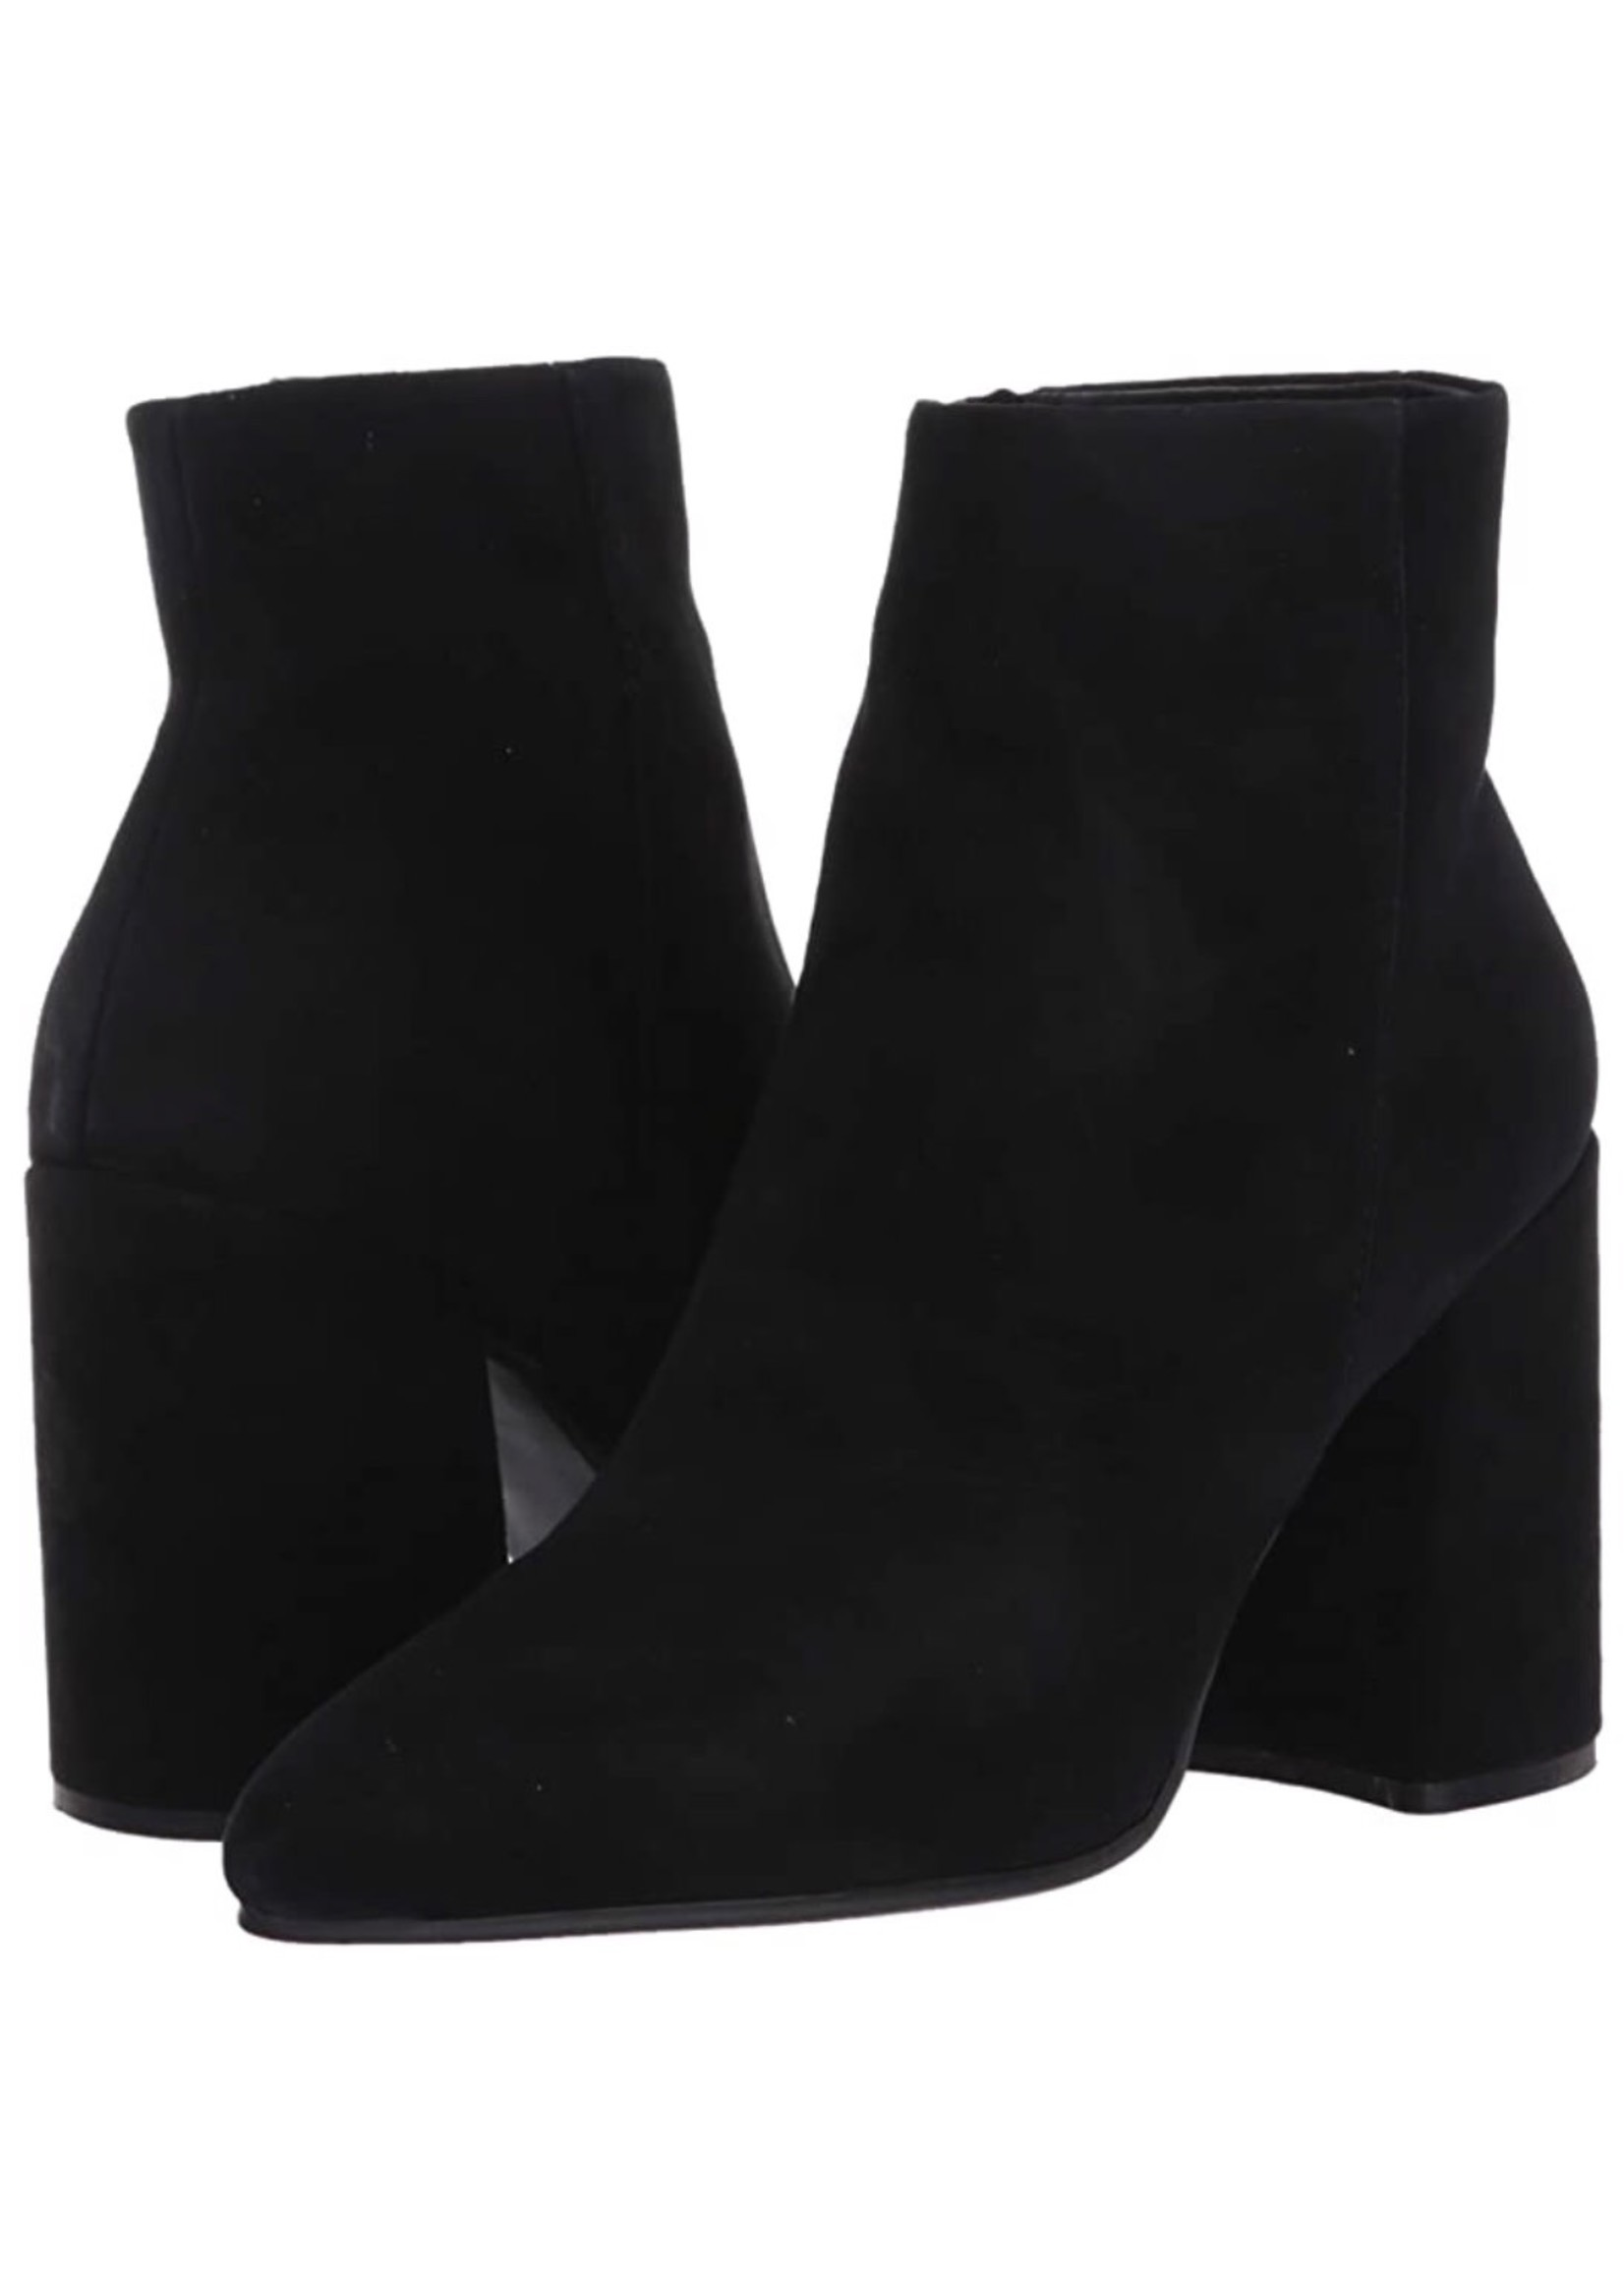 STEVE MADDEN The TERESE Suede Booties